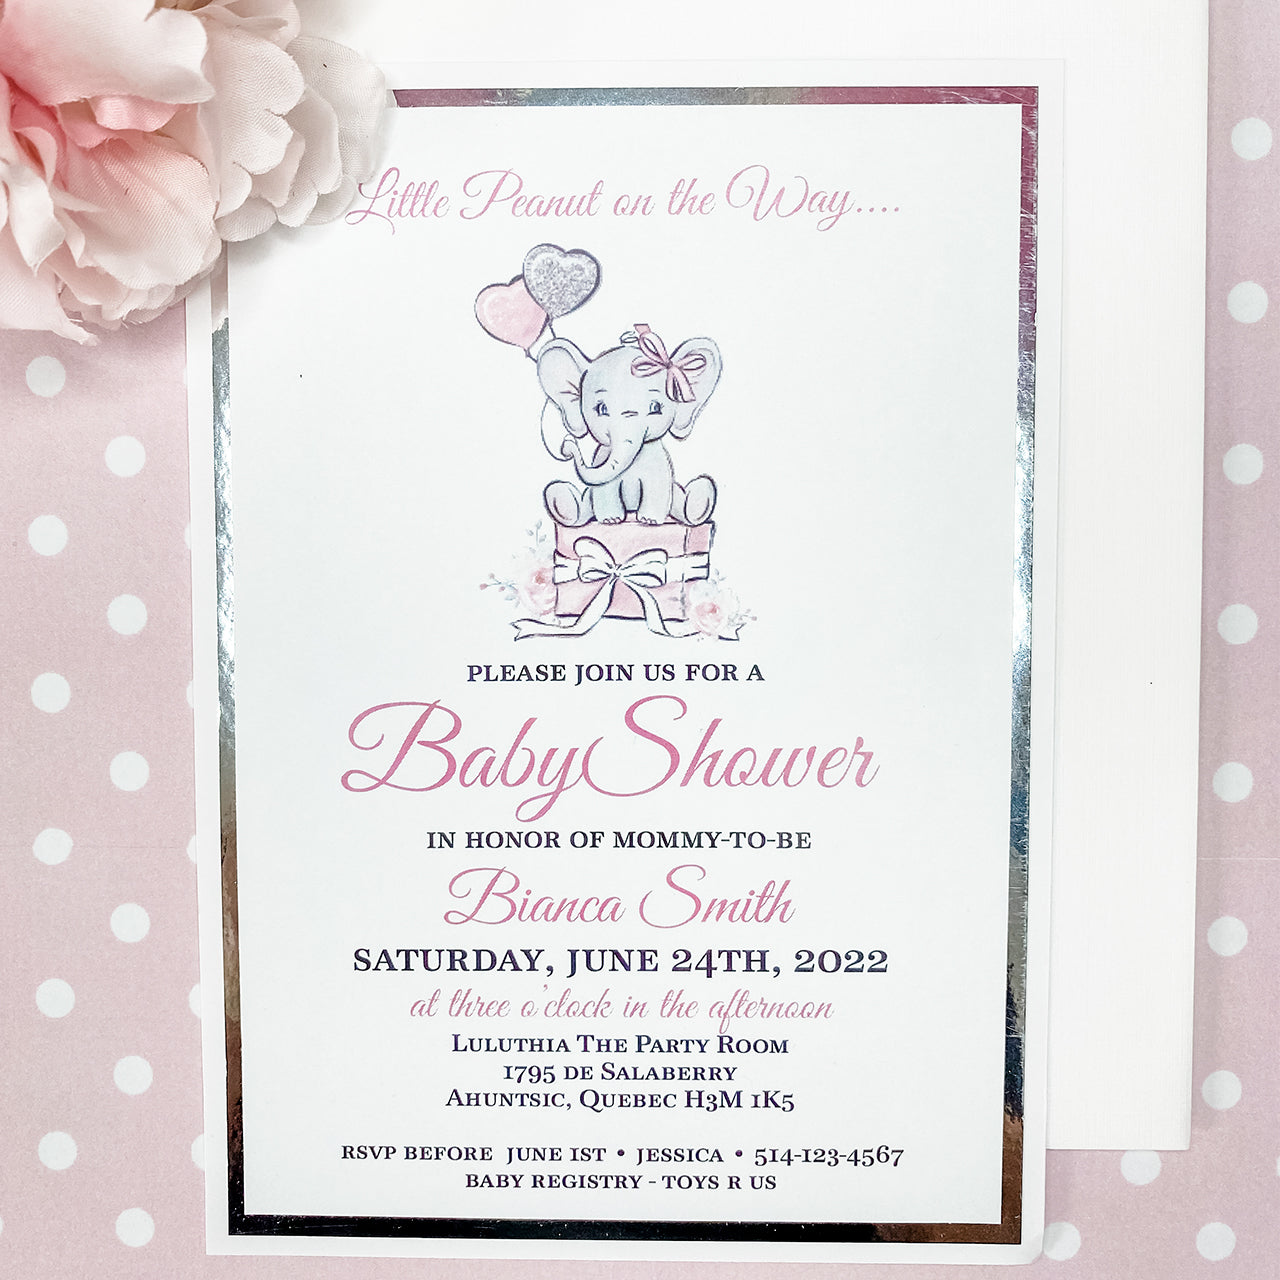 LITTLE PEANUT ON THE WAY - IT'S A GIRL INVITATION CARD